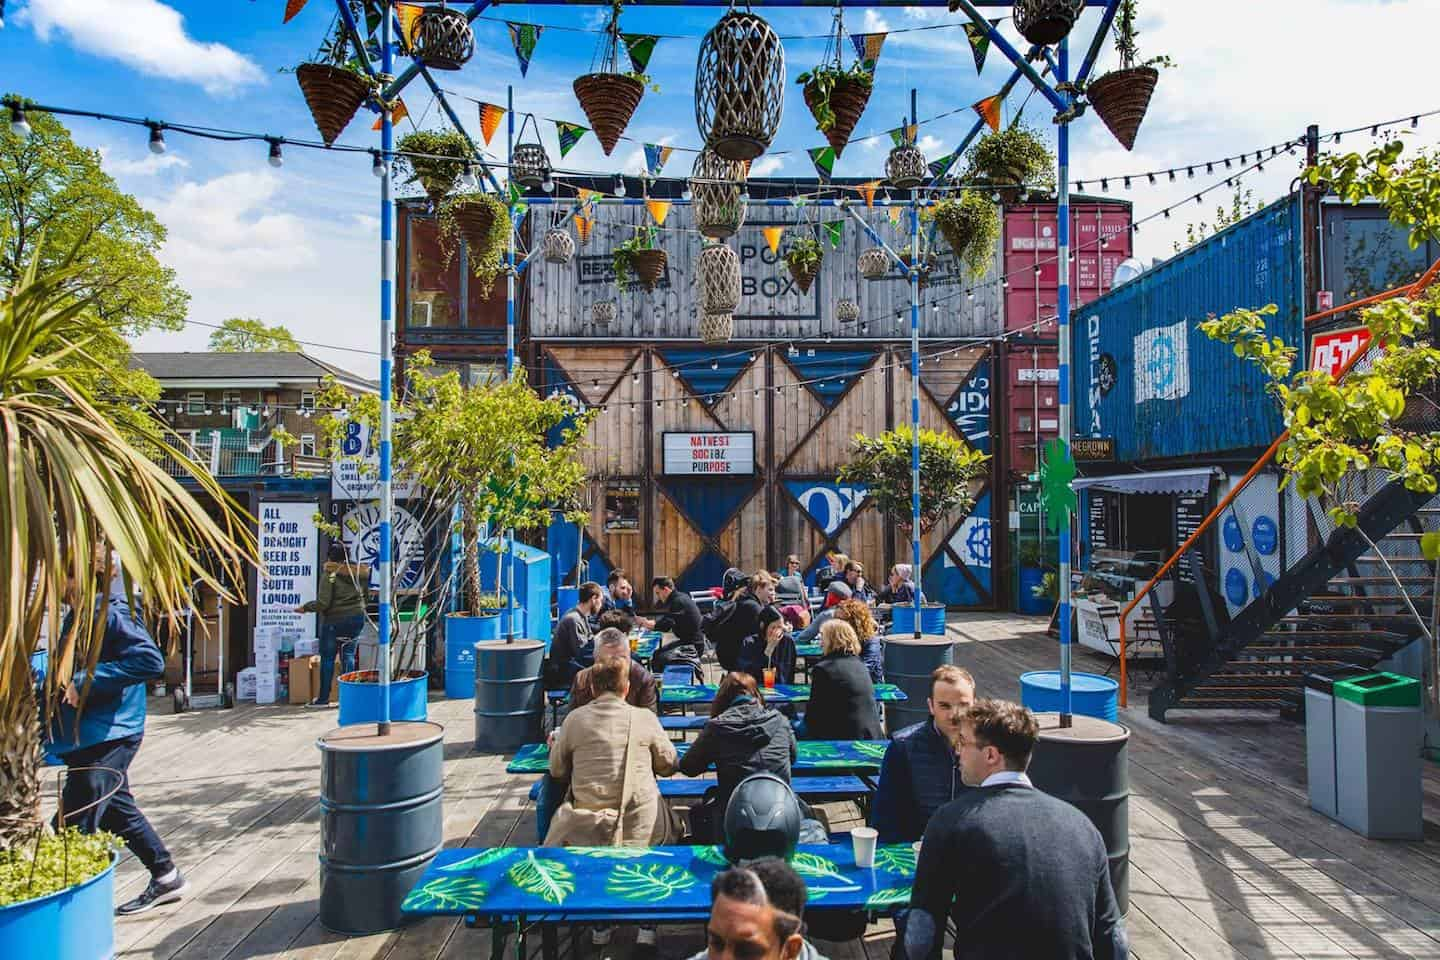 Best Dog-friendly Street Food Markets and Halls in London - Pop Brixton